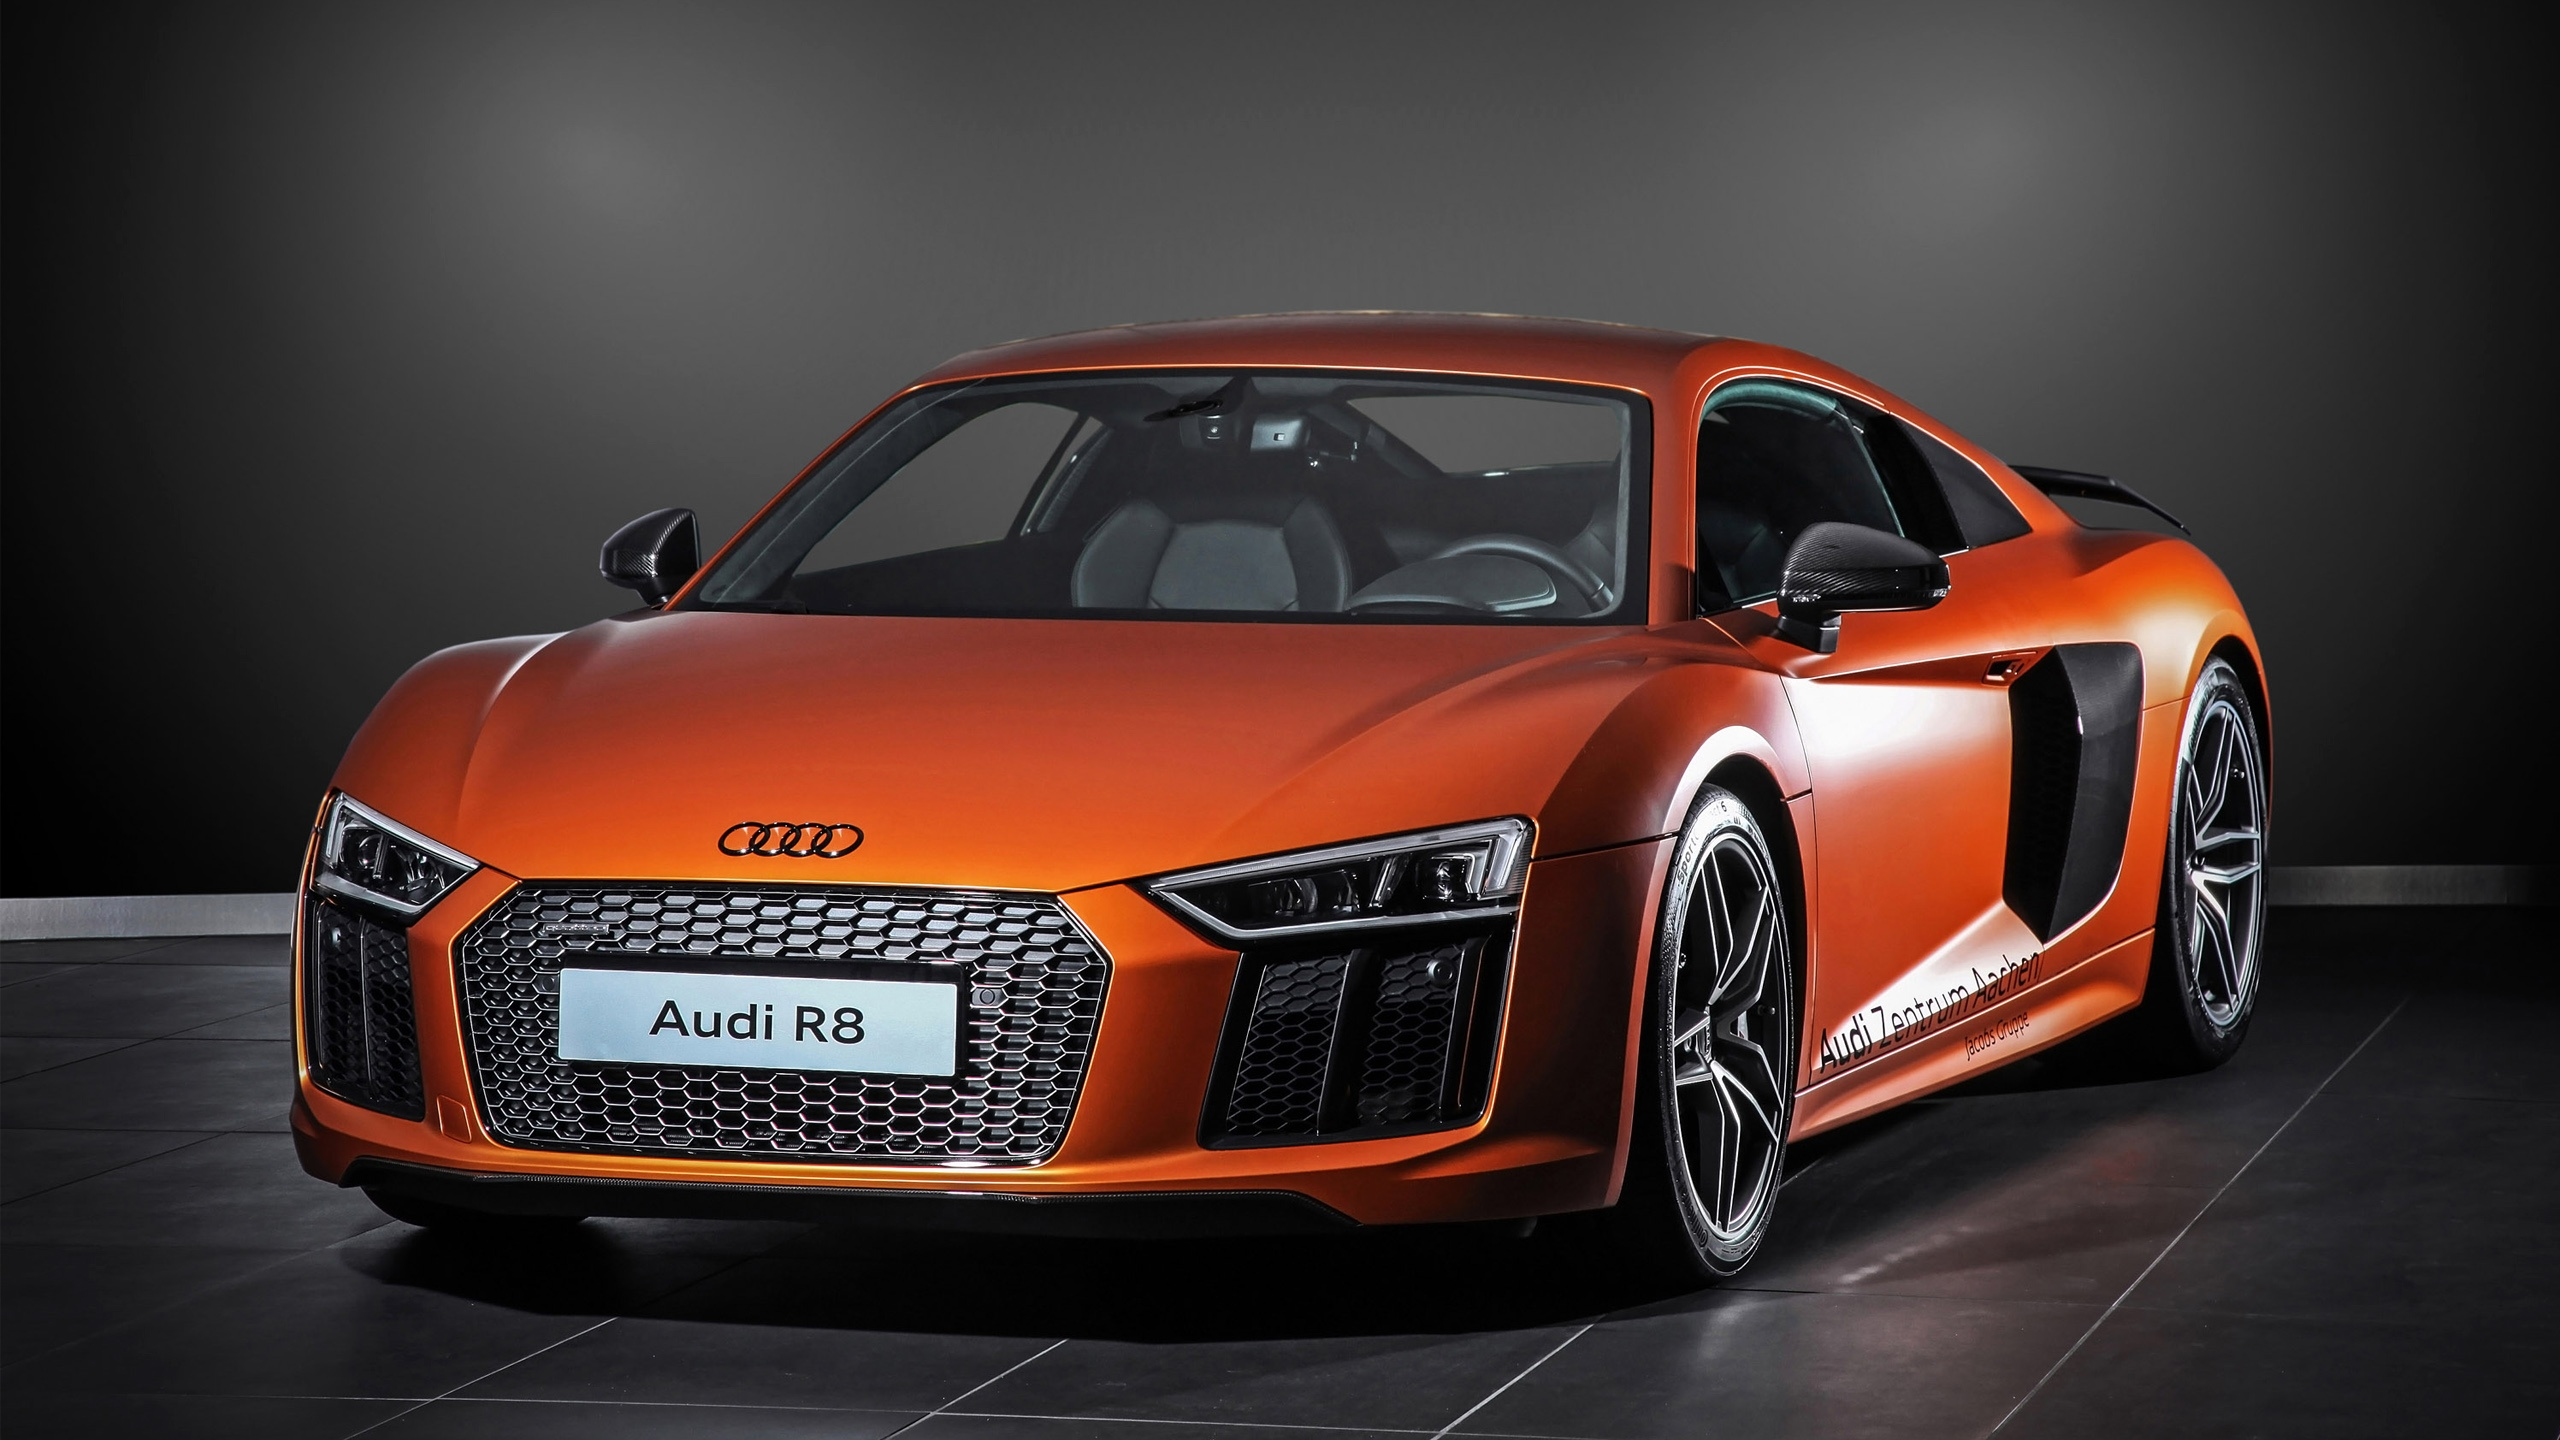 2015 HplusB Design Audi R8 V10 Wallpaper HD Car Wallpapers 2560x1440